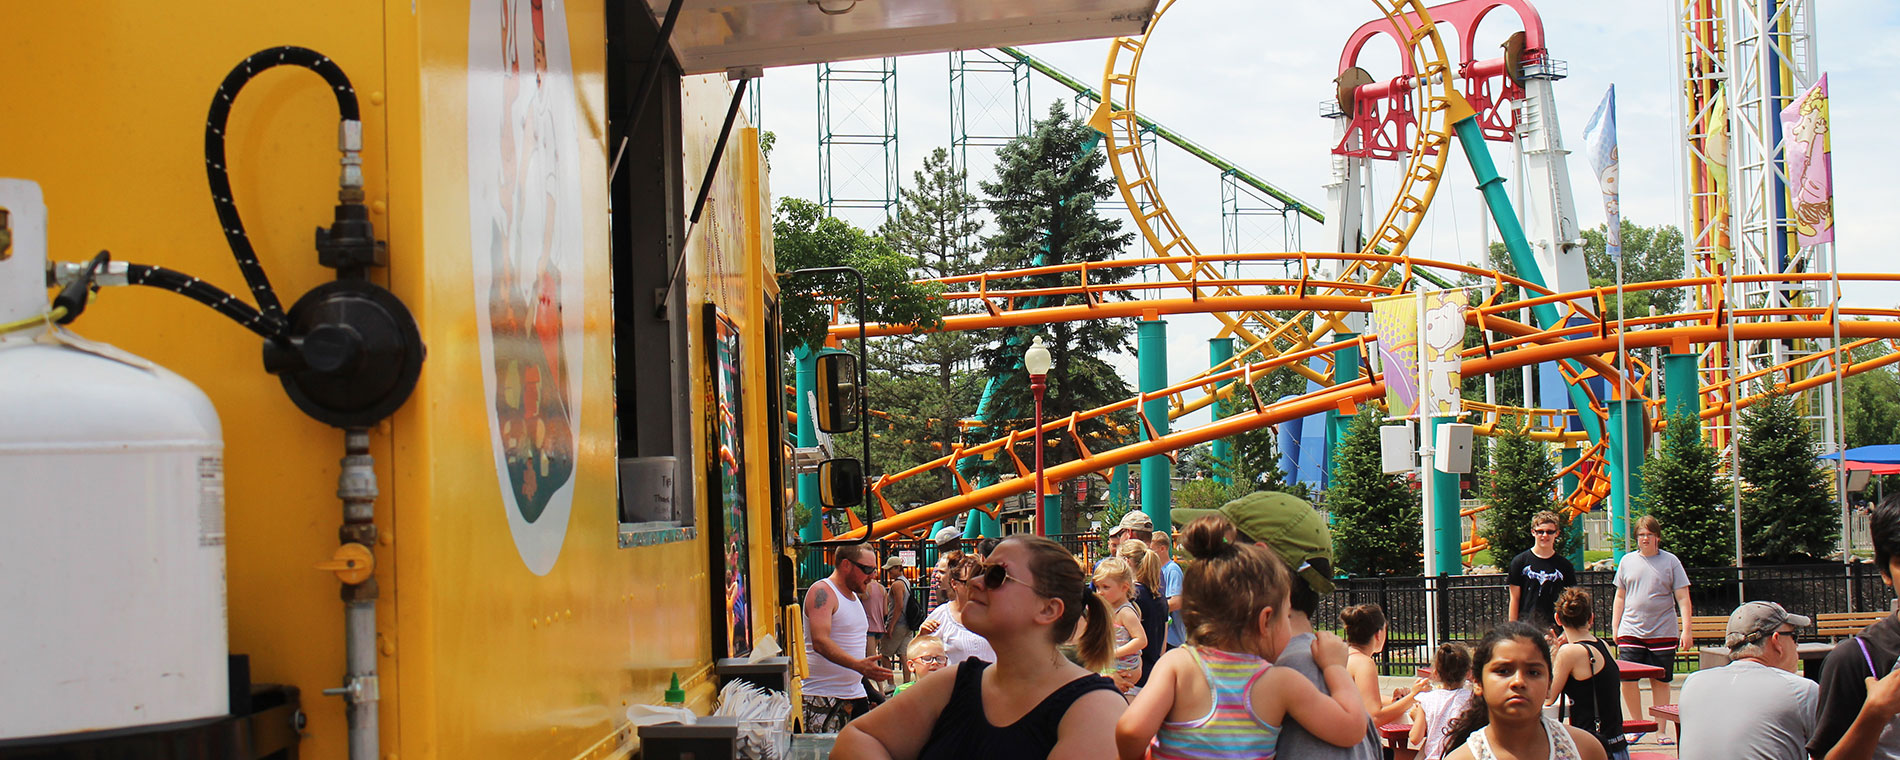 Food Truck Fridays at Valleyfair